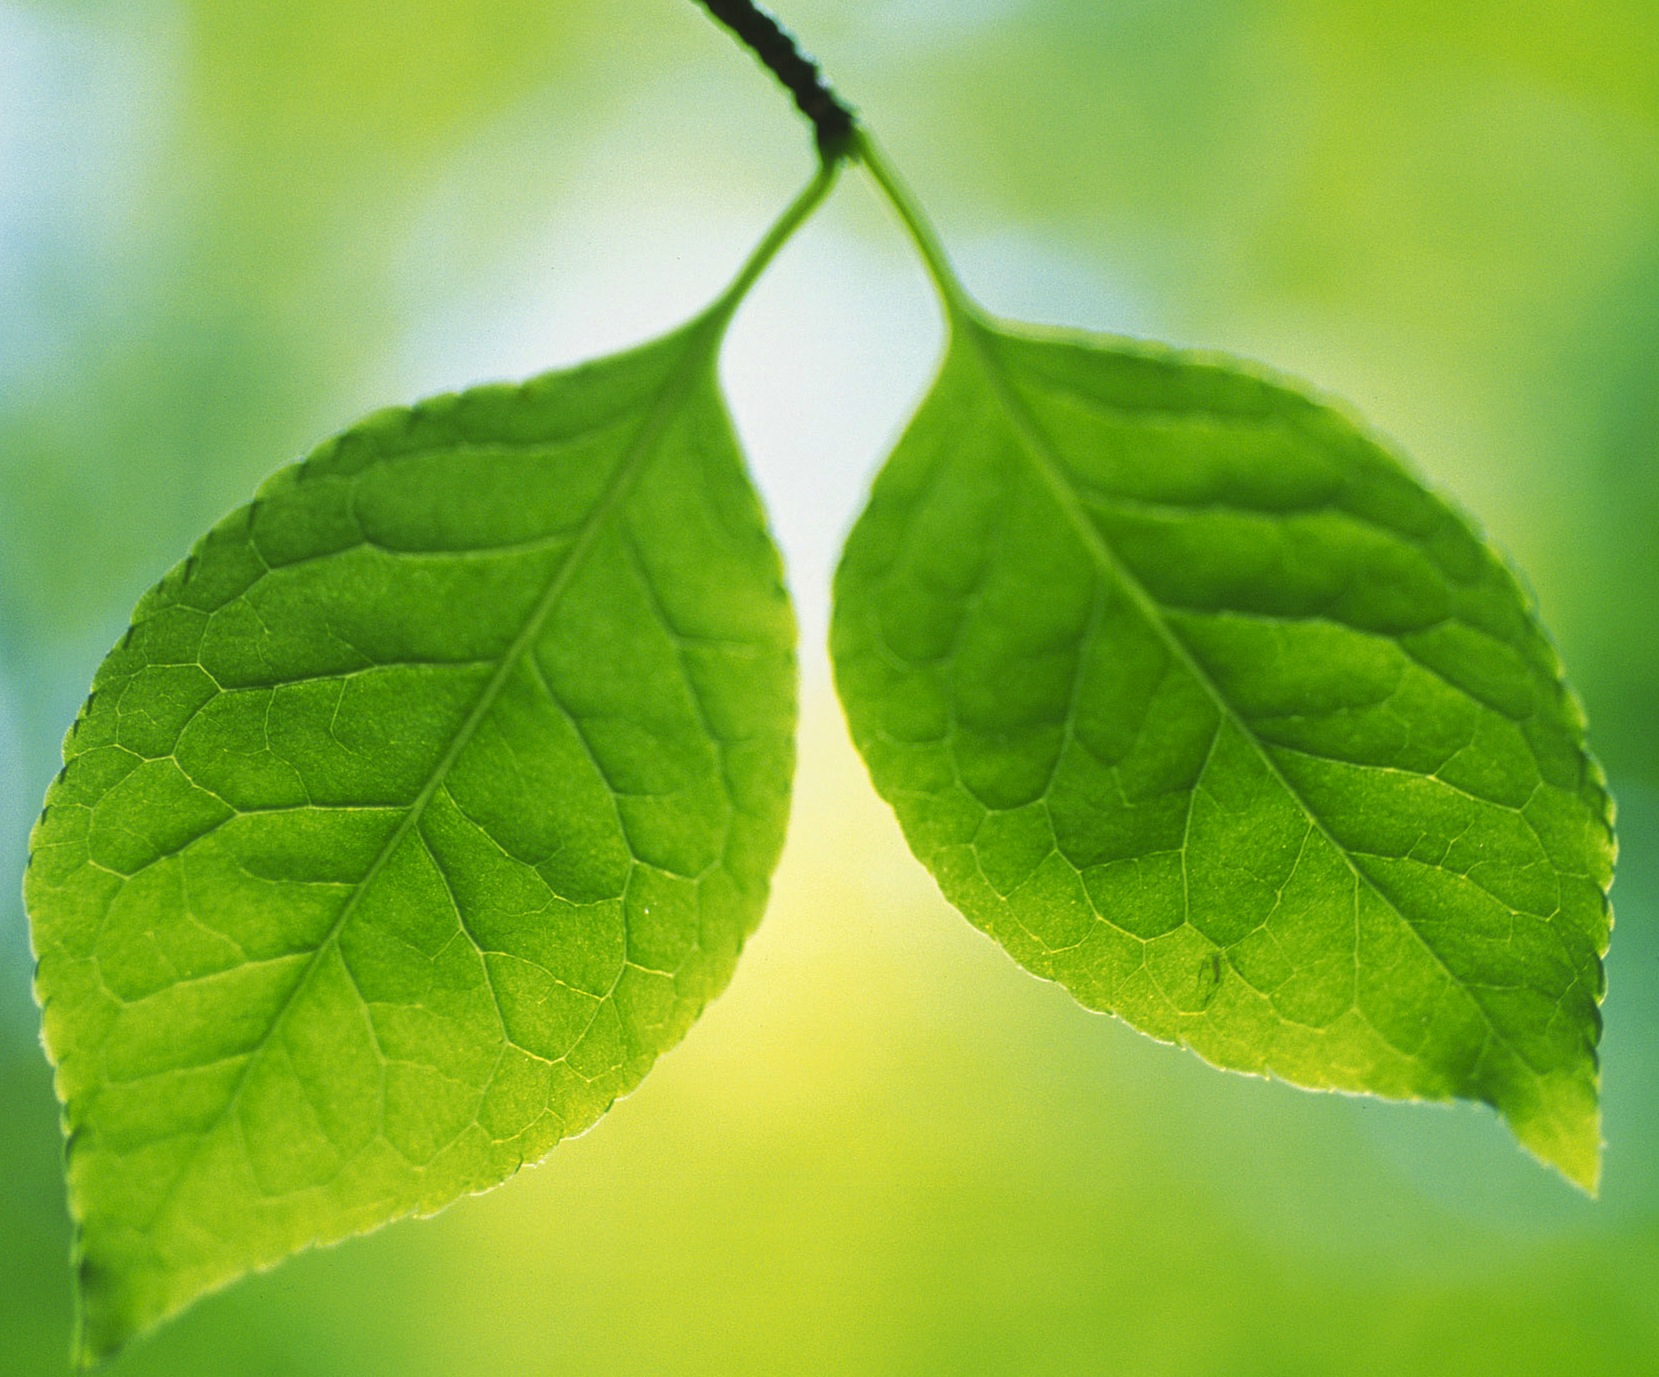 twin-green-leaves-wallpapers_13992_2560x1600